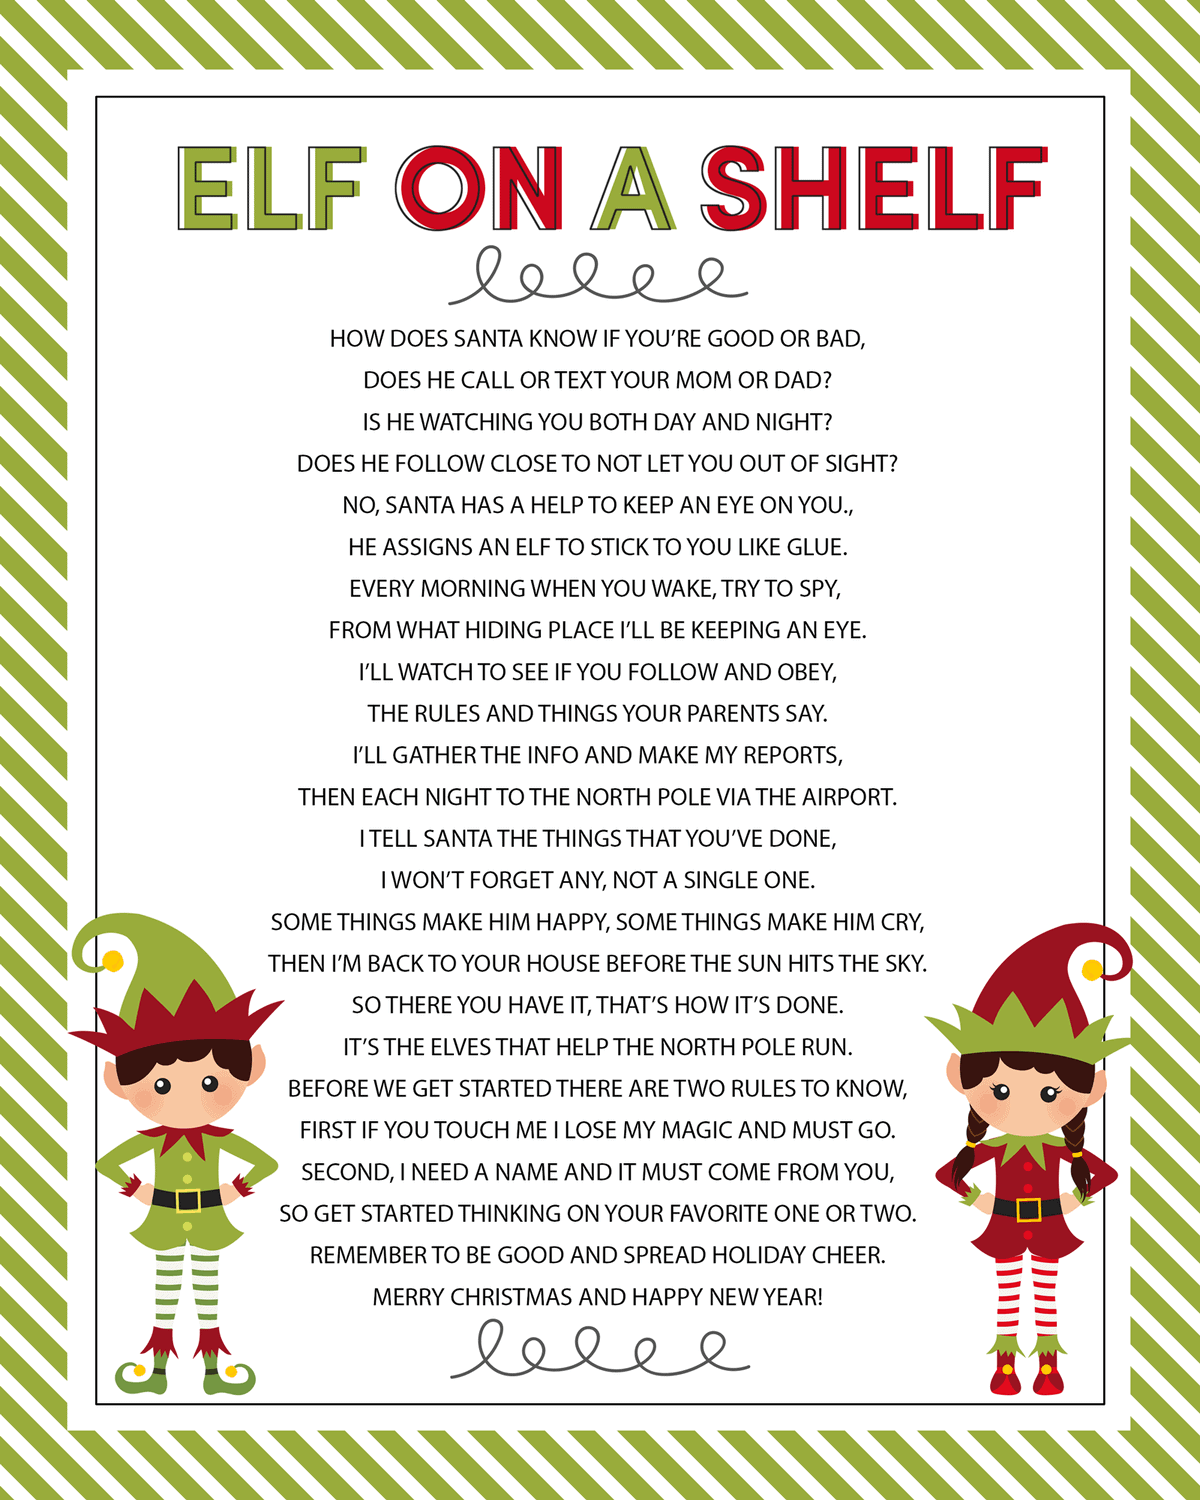 Elf on the Shelf Story - FREE Printable Poem - Lil' Luna